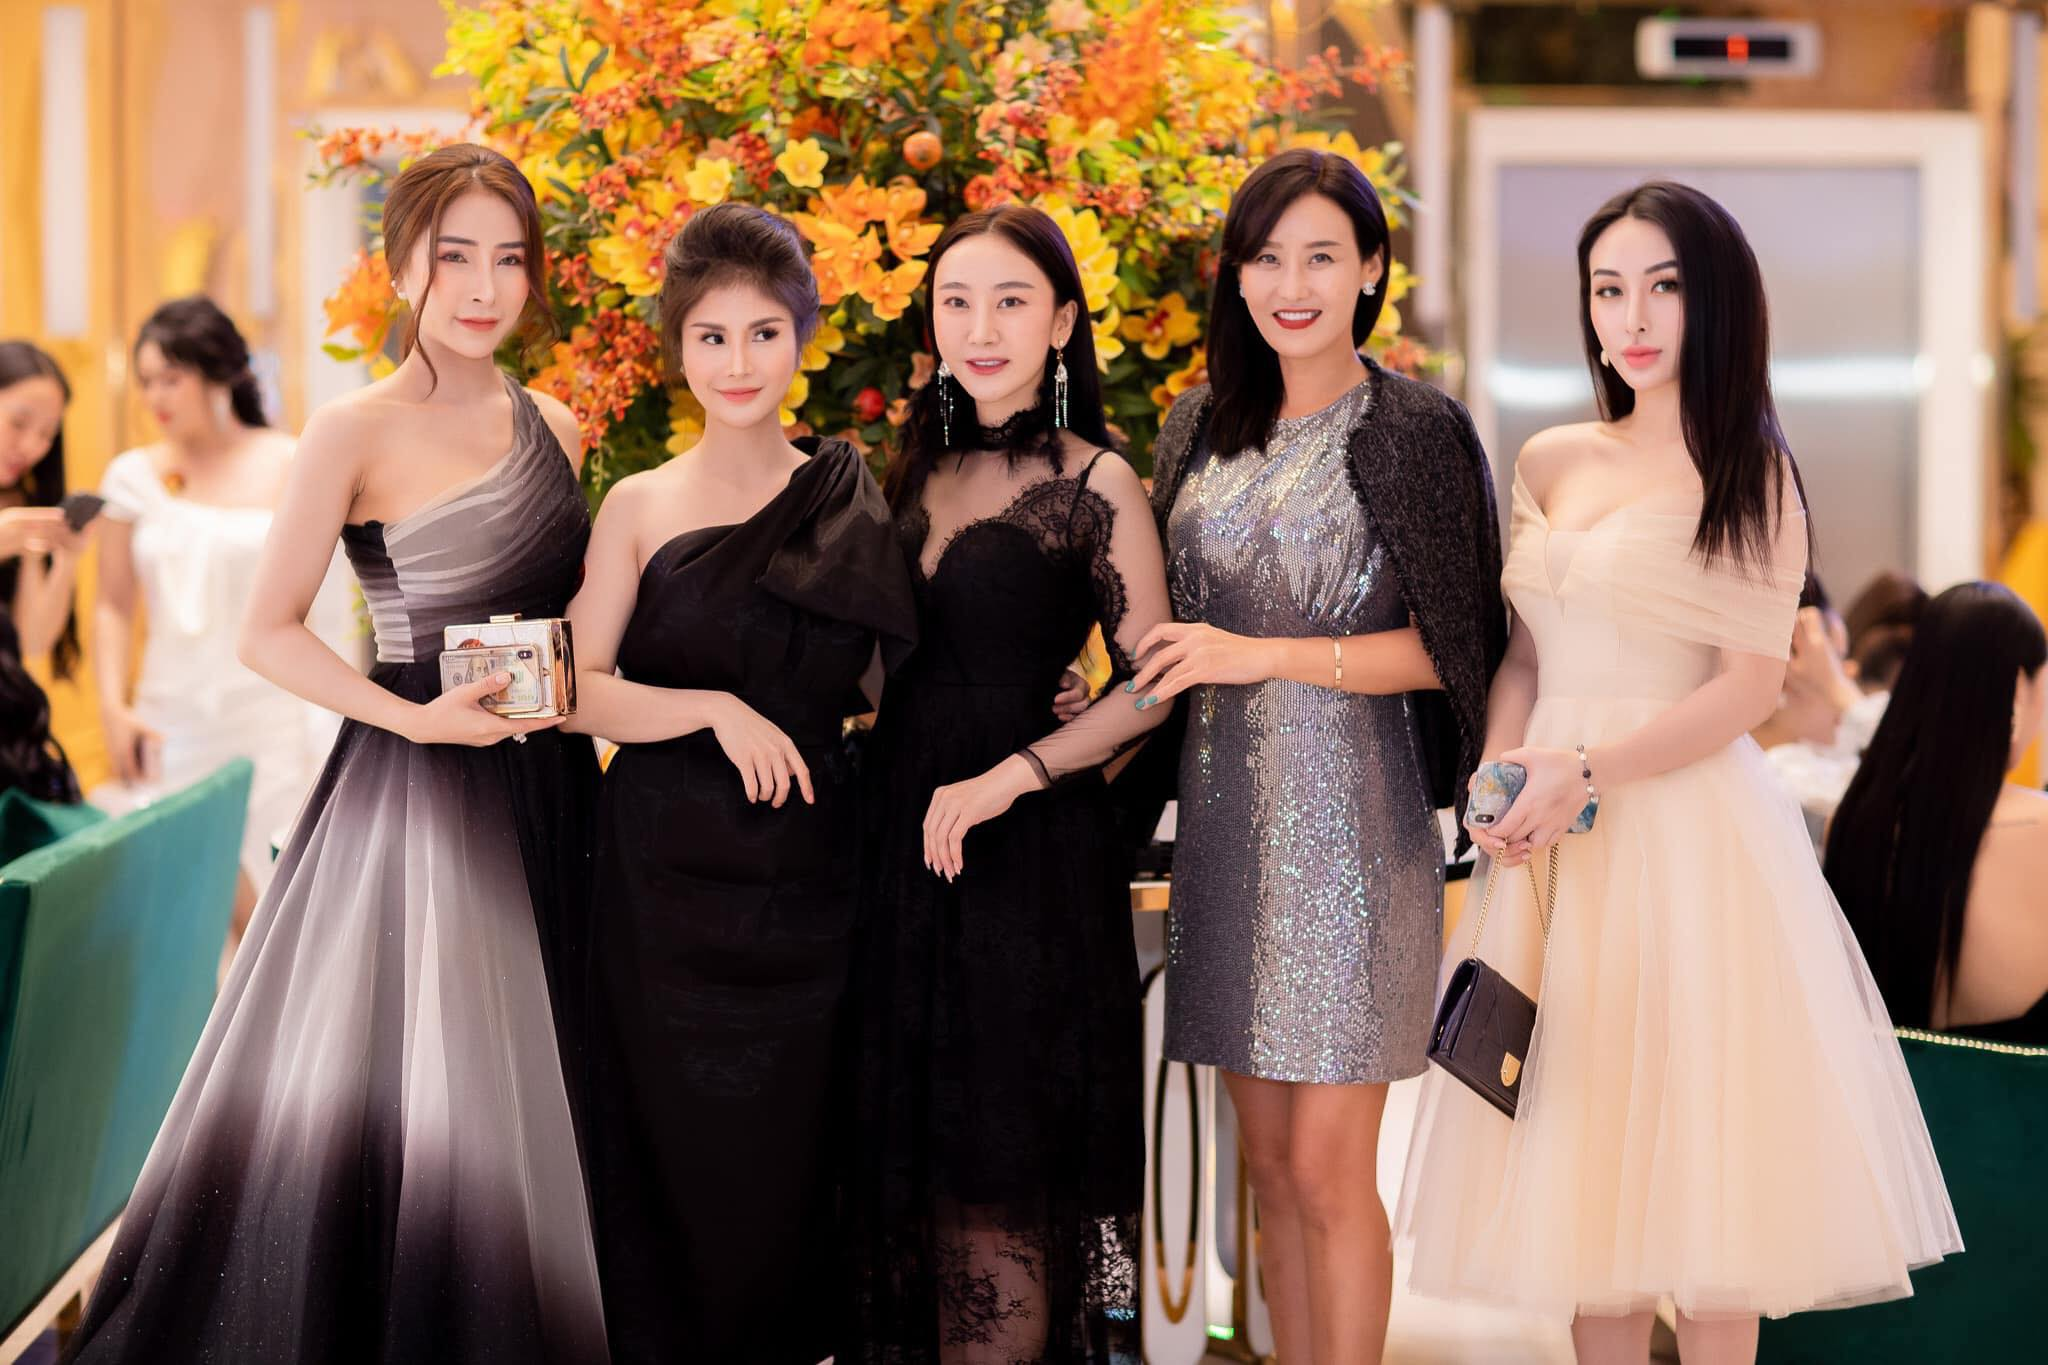 Image #2 from Thanh Ngoc